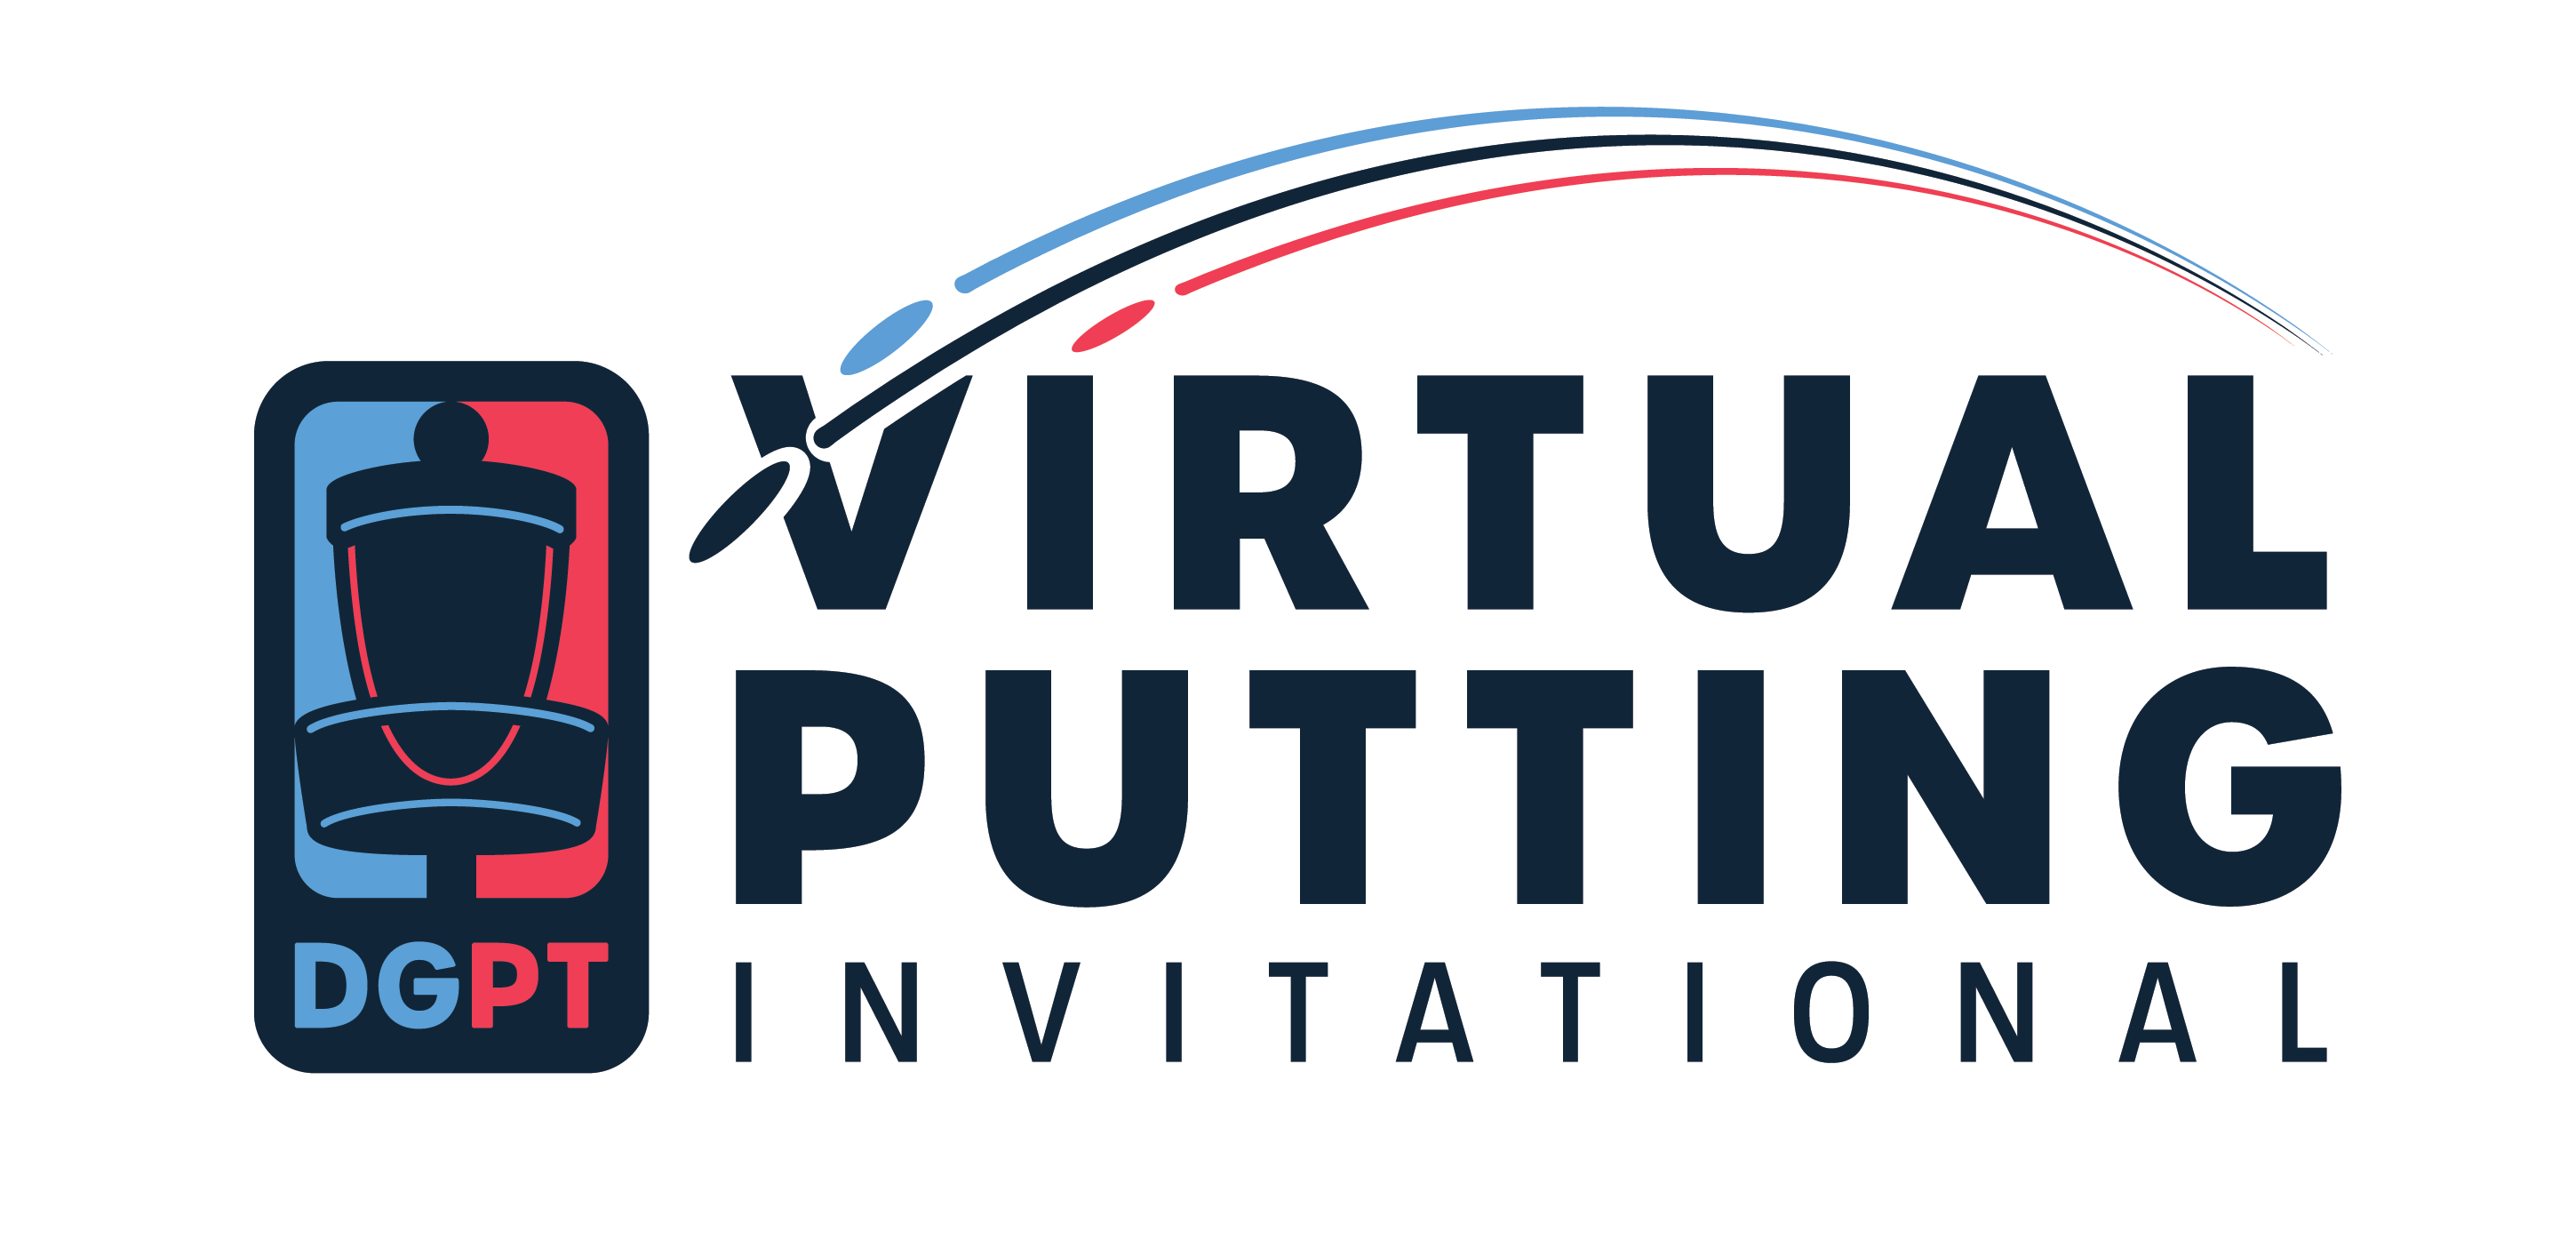 Introducing the DGPT Virtual Putting Invitational